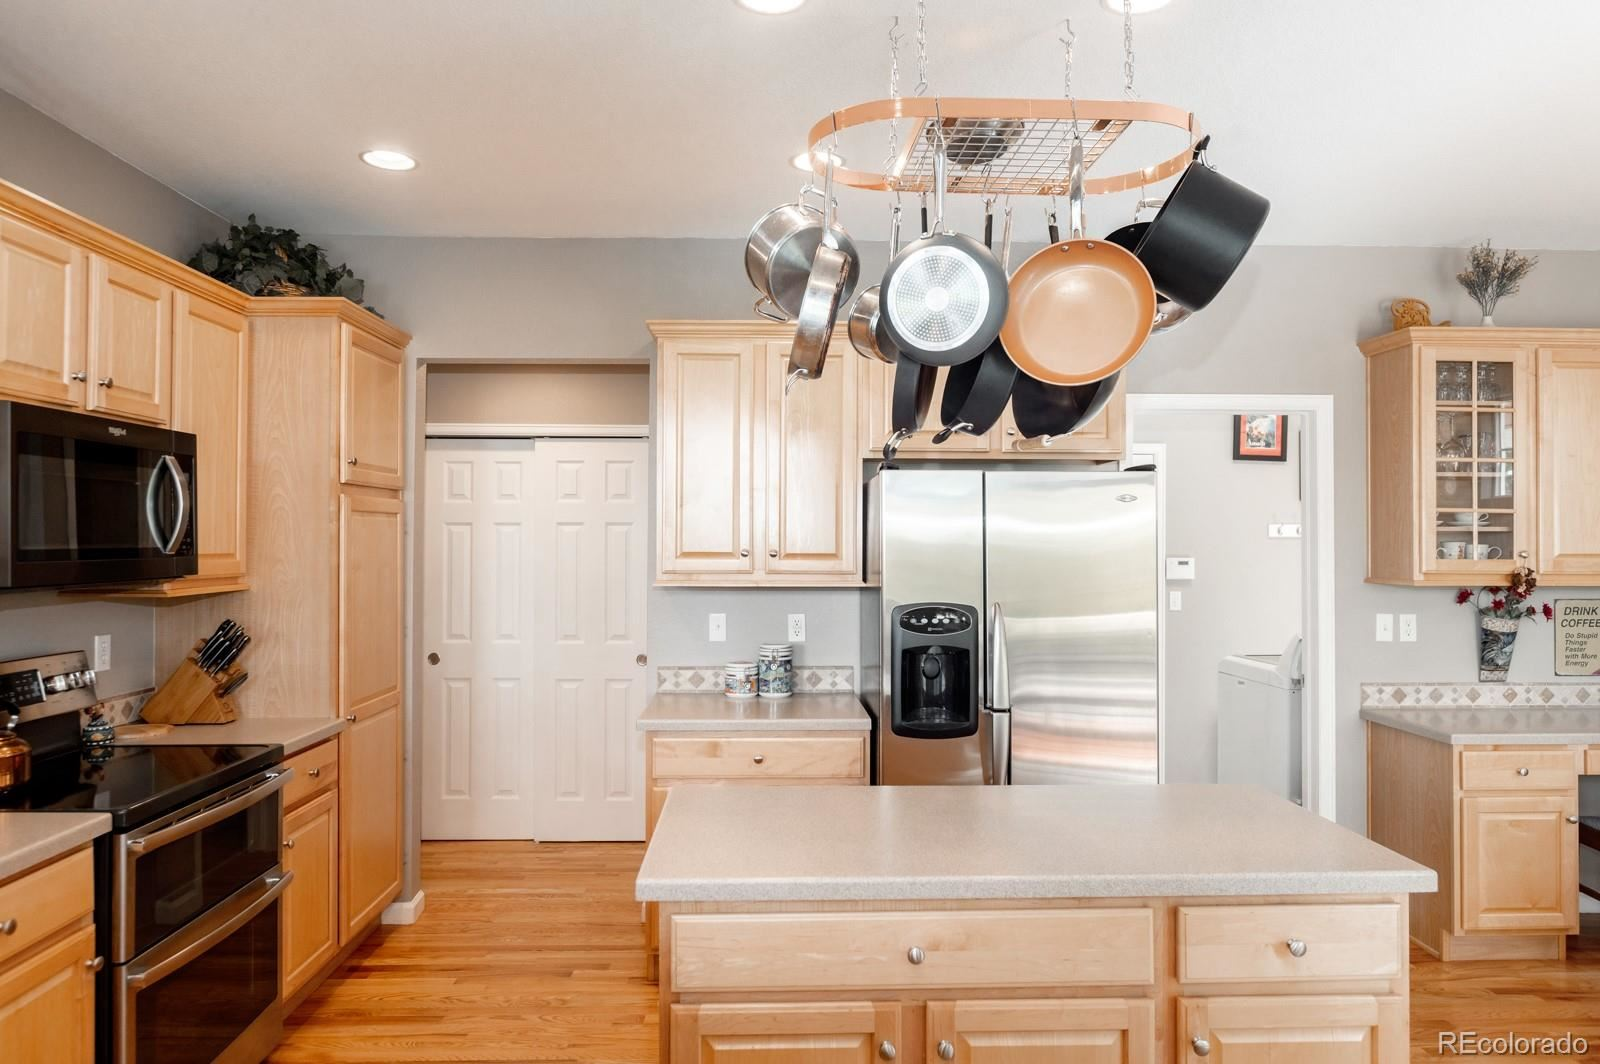 Property Image Of 14061 W 83Rd Place In Arvada, Co